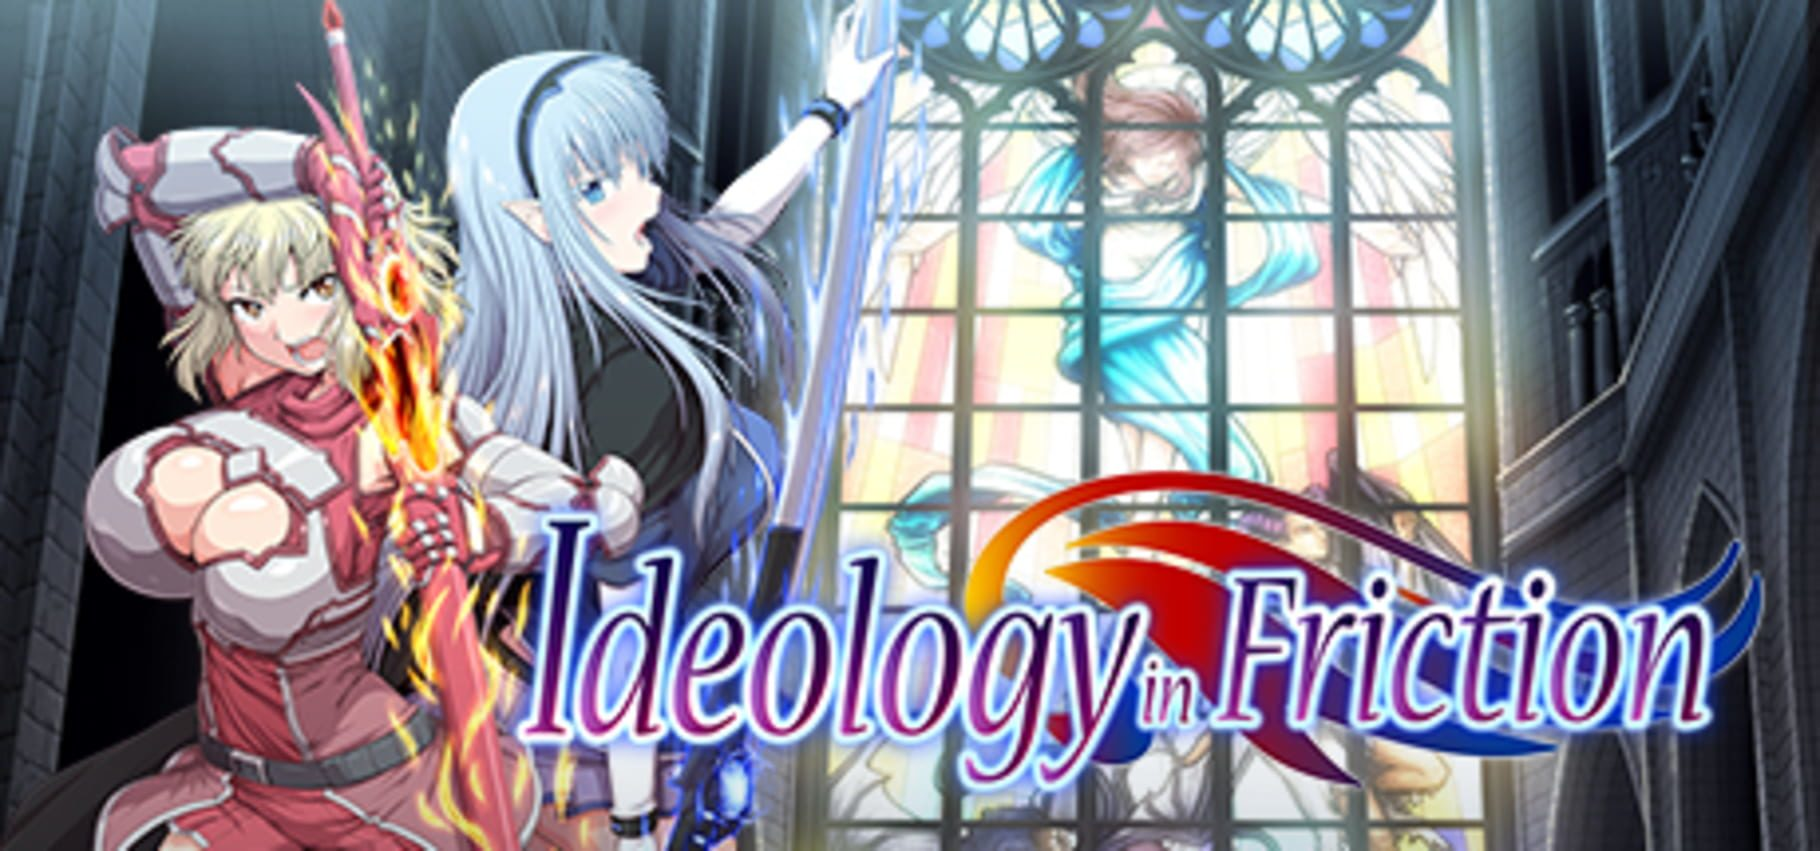 buy Ideology in Friction cd key for all platform